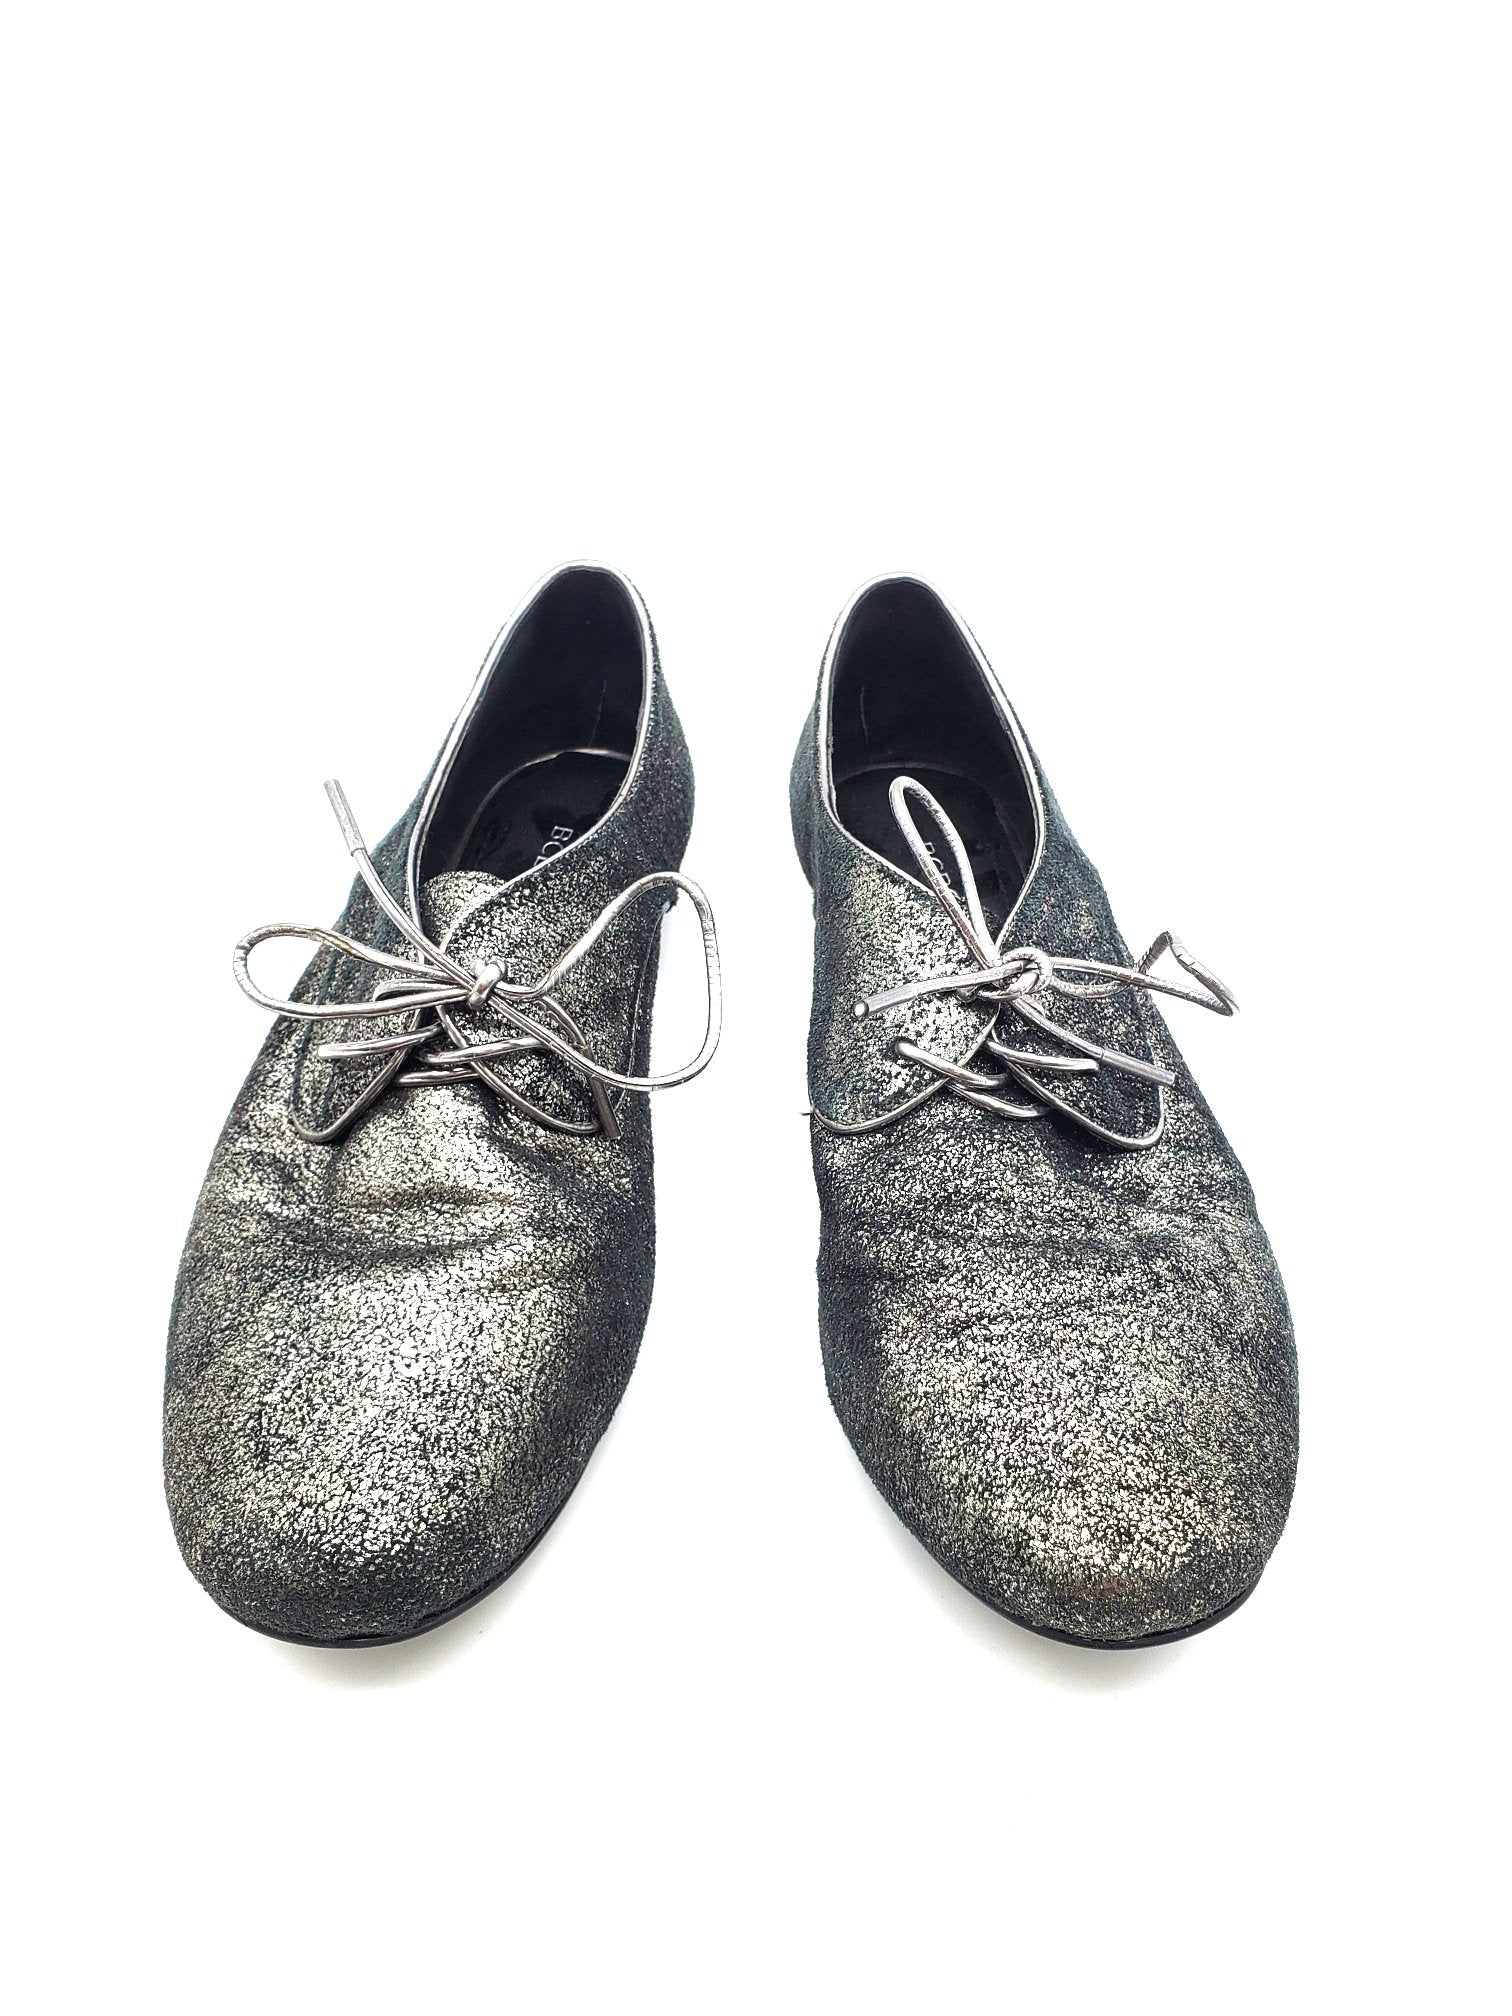 Primary Photo - BRAND: BCBGENERATION <BR>STYLE: SHOES FLATS <BR>COLOR: SPARKLES <BR>SIZE: 6.5 <BR>SKU: 262-26241-41758<BR>AS IS <BR>